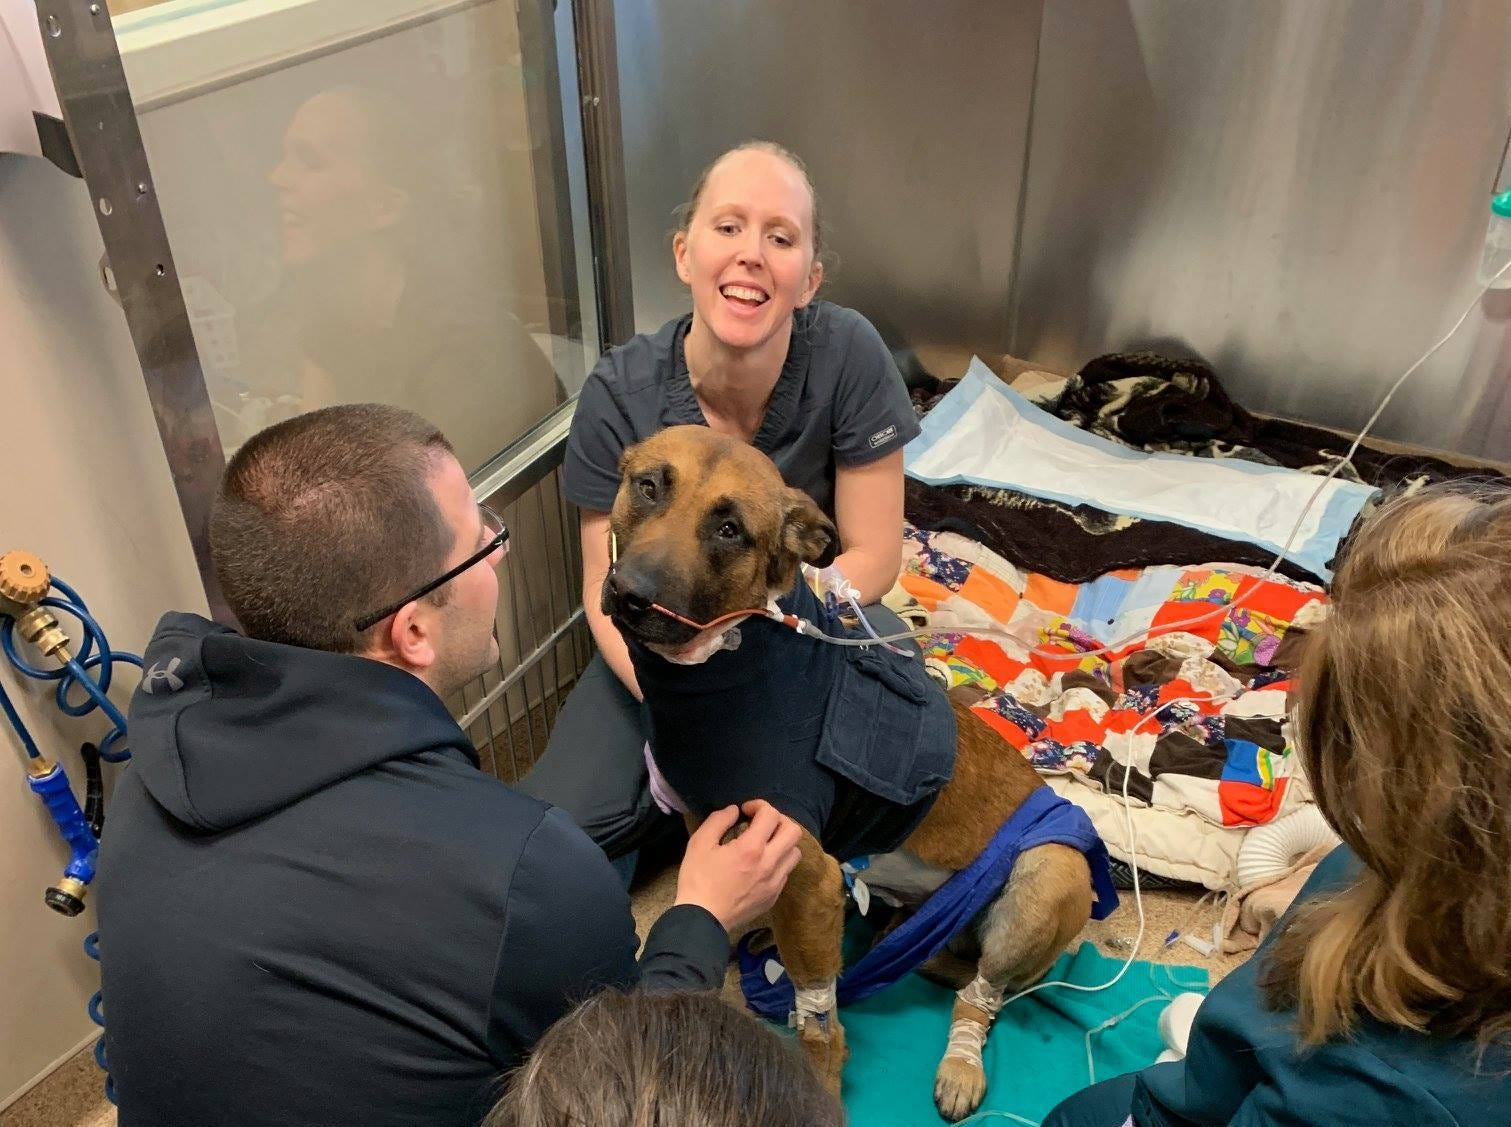 Green Bay Police dog Pyro has undergone multiple surgeries since being stabbed Sunday night. He is currently recovering in the intensive care unit at the Animal Referral Center in Appleton. Pyro is in critical but stable condition as of Monday afternoon.